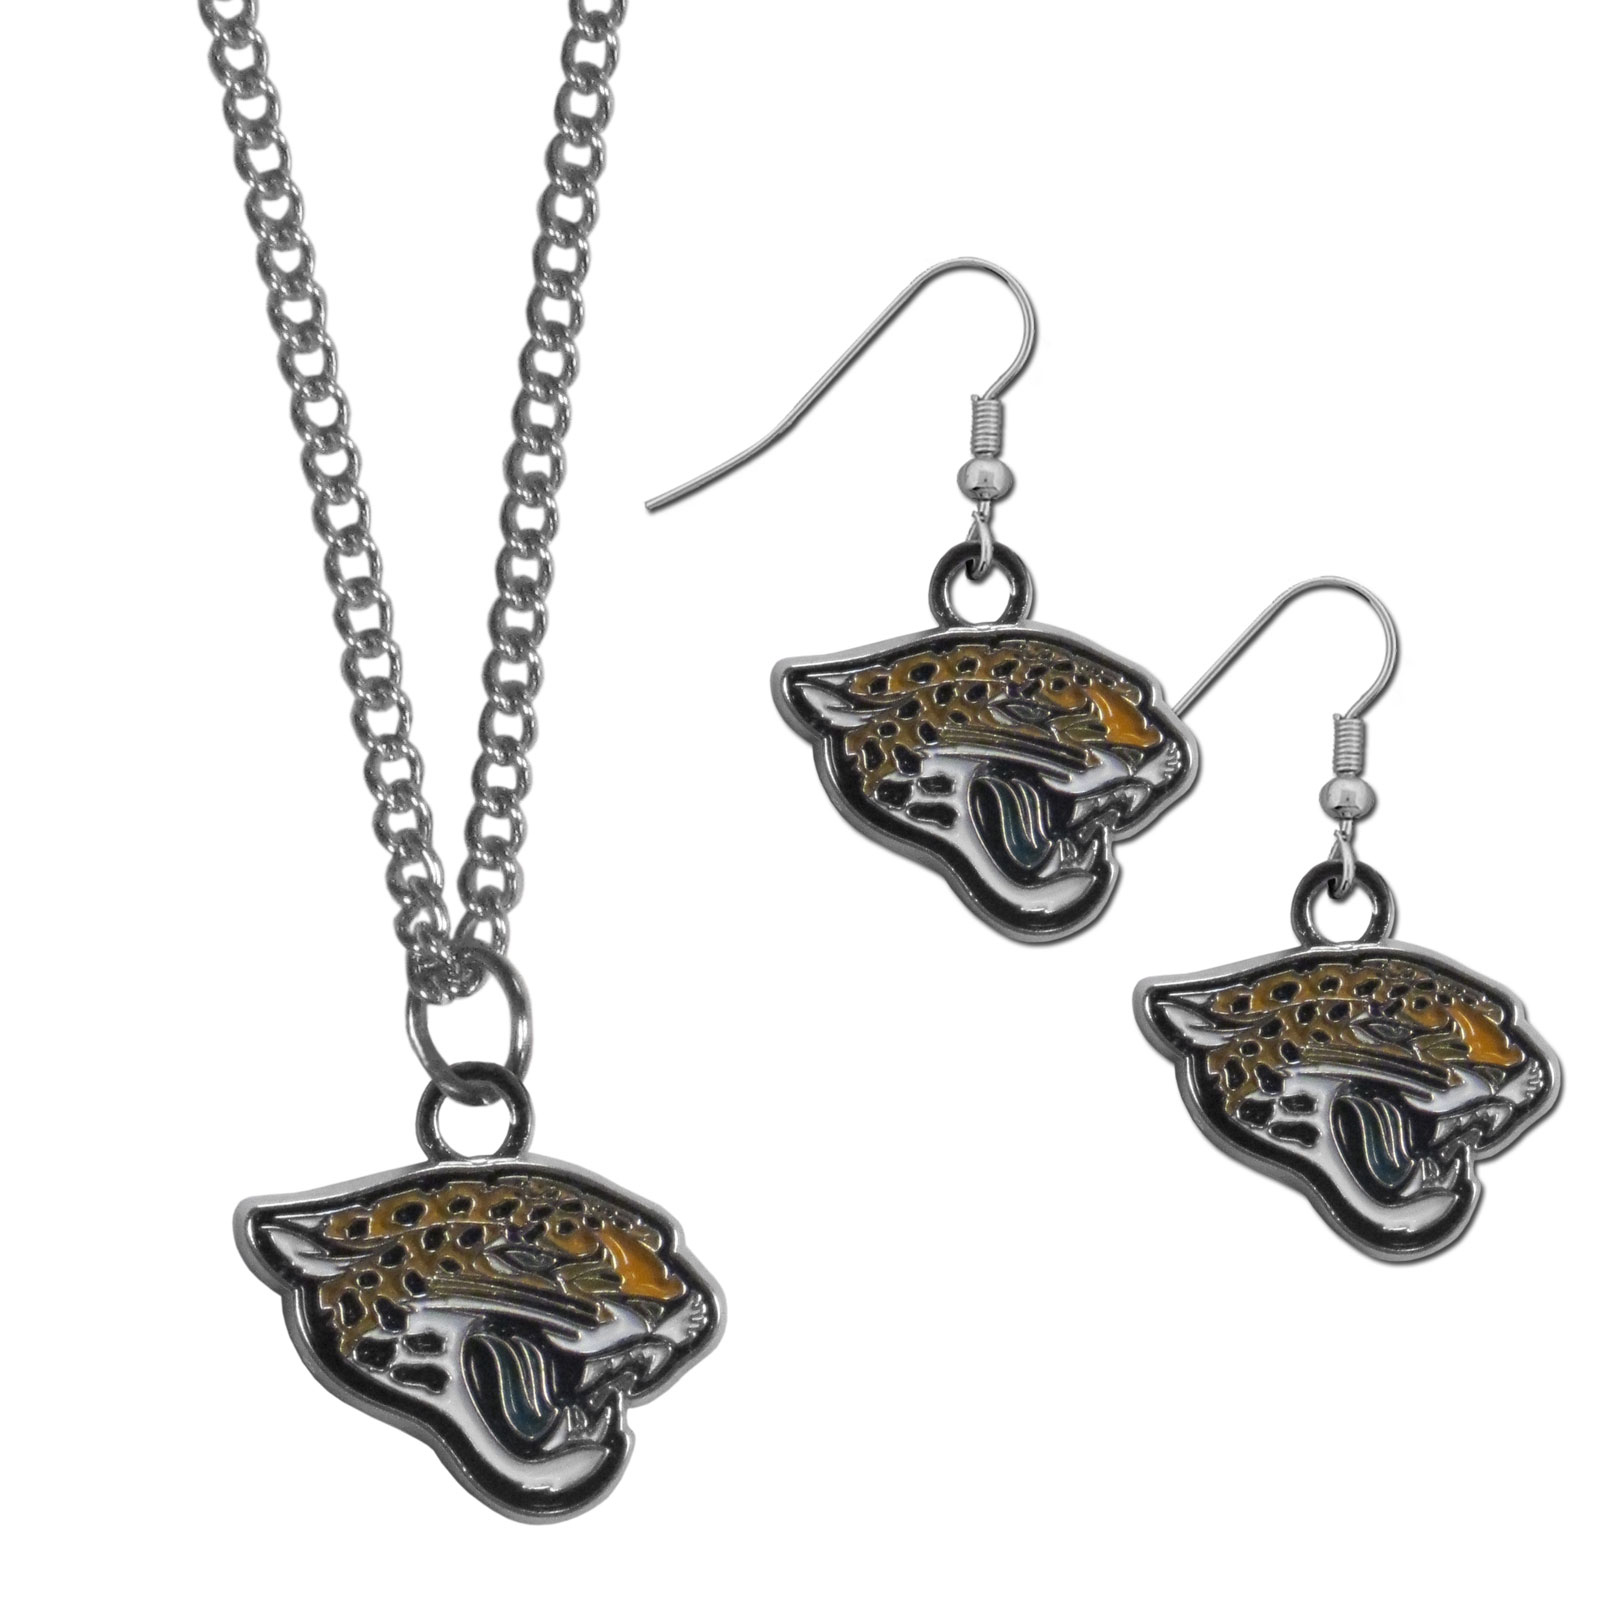 Jacksonville Jaguars Dangle Earrings and Chain Necklace Set - This classic jewelry set contains are most popular Jacksonville Jaguars dangle earrings and 22 inch chain necklace. The trendy, dangle earrings are lightweight and feature a fully cast metal team charm with enameled team colors. The matching necklace completes this fashion forward combo and is a spirited set that is perfect for game day but nice enough for everyday.